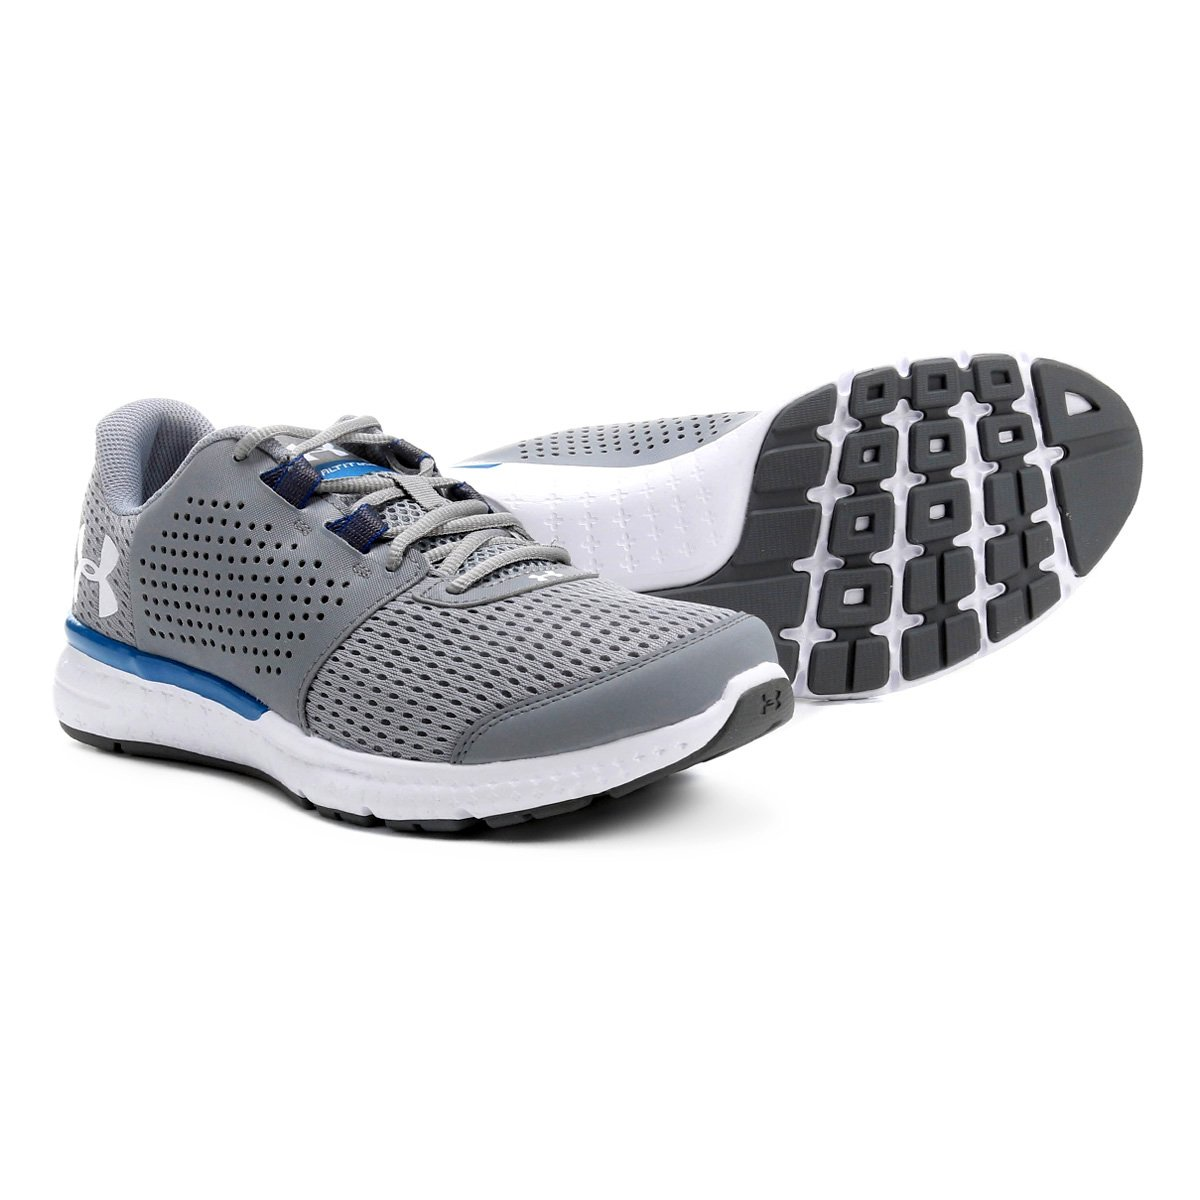 ed9516e6a17 Tênis Under Armour Altitude AS Masculino - Compre Agora